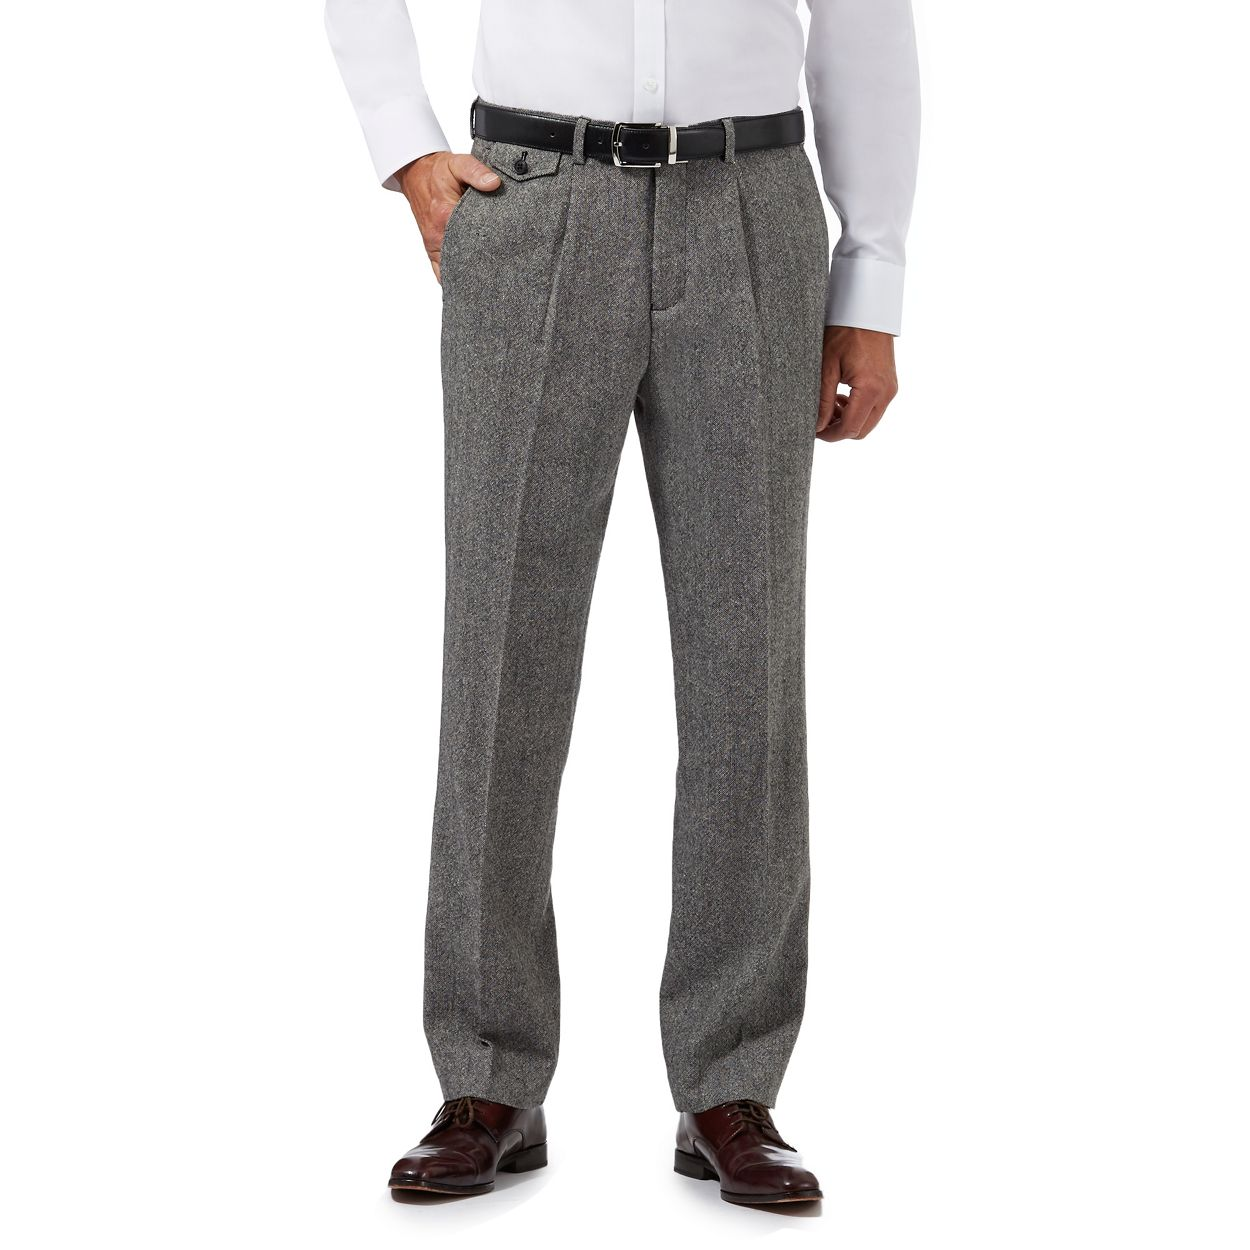 Hammond & Co. by Patrick Grant Grey Designer grey tailored trousers